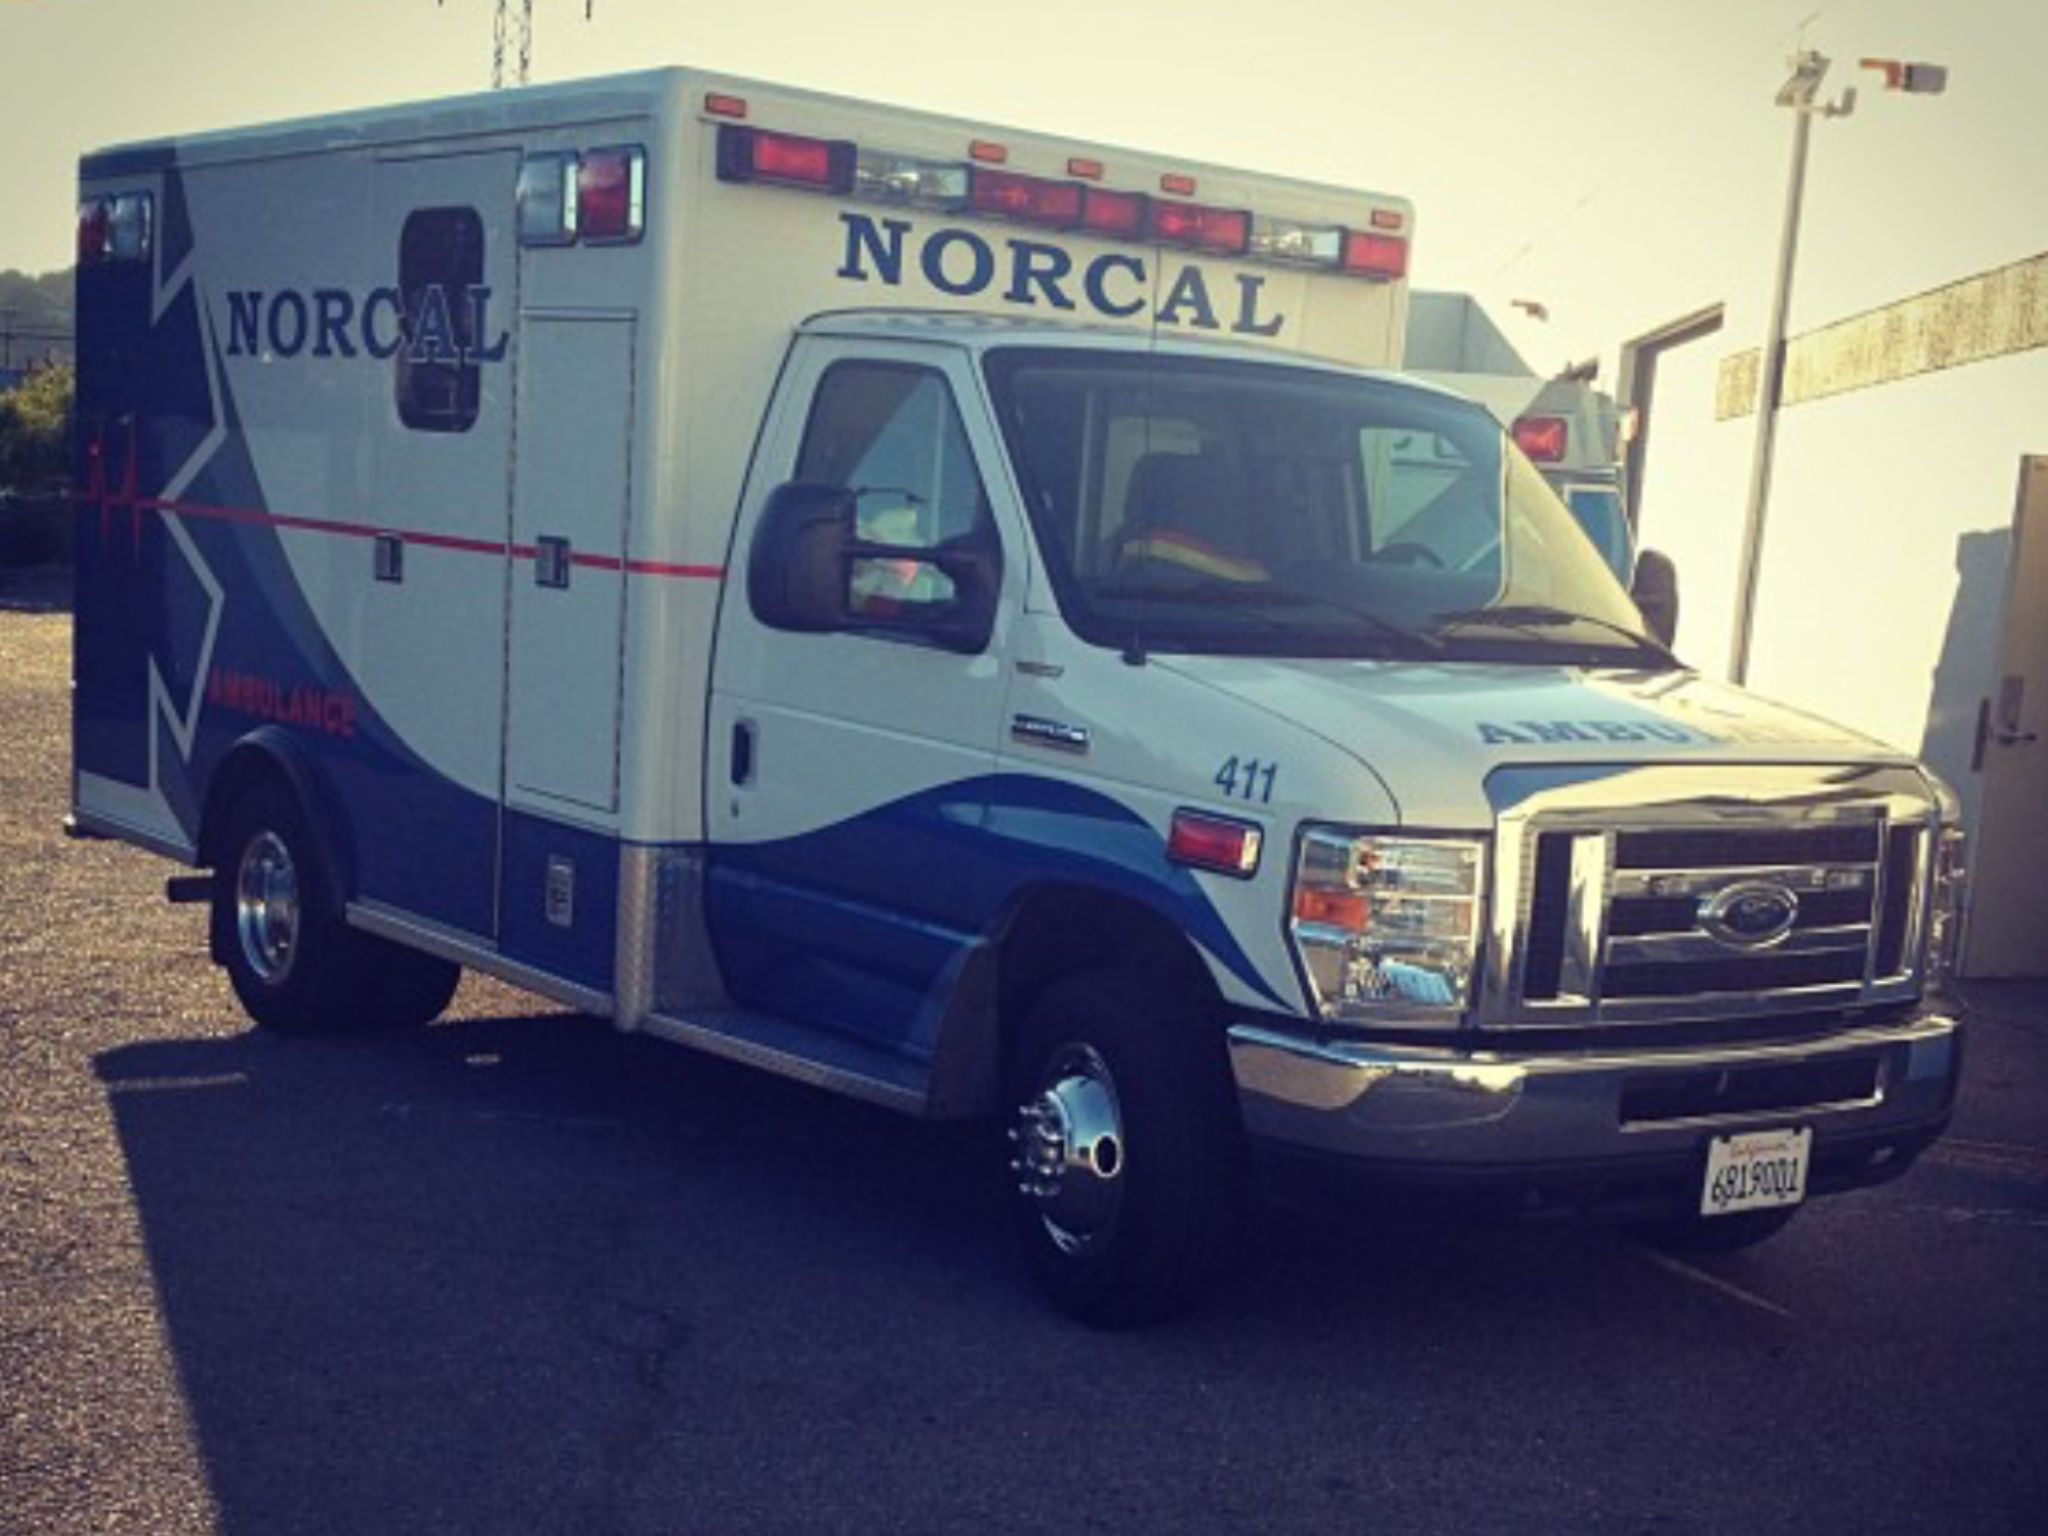 Norcal Ambulance Ford E350 Econoline Emergency Vehicles Ems Ambulance Columbus Fire Department